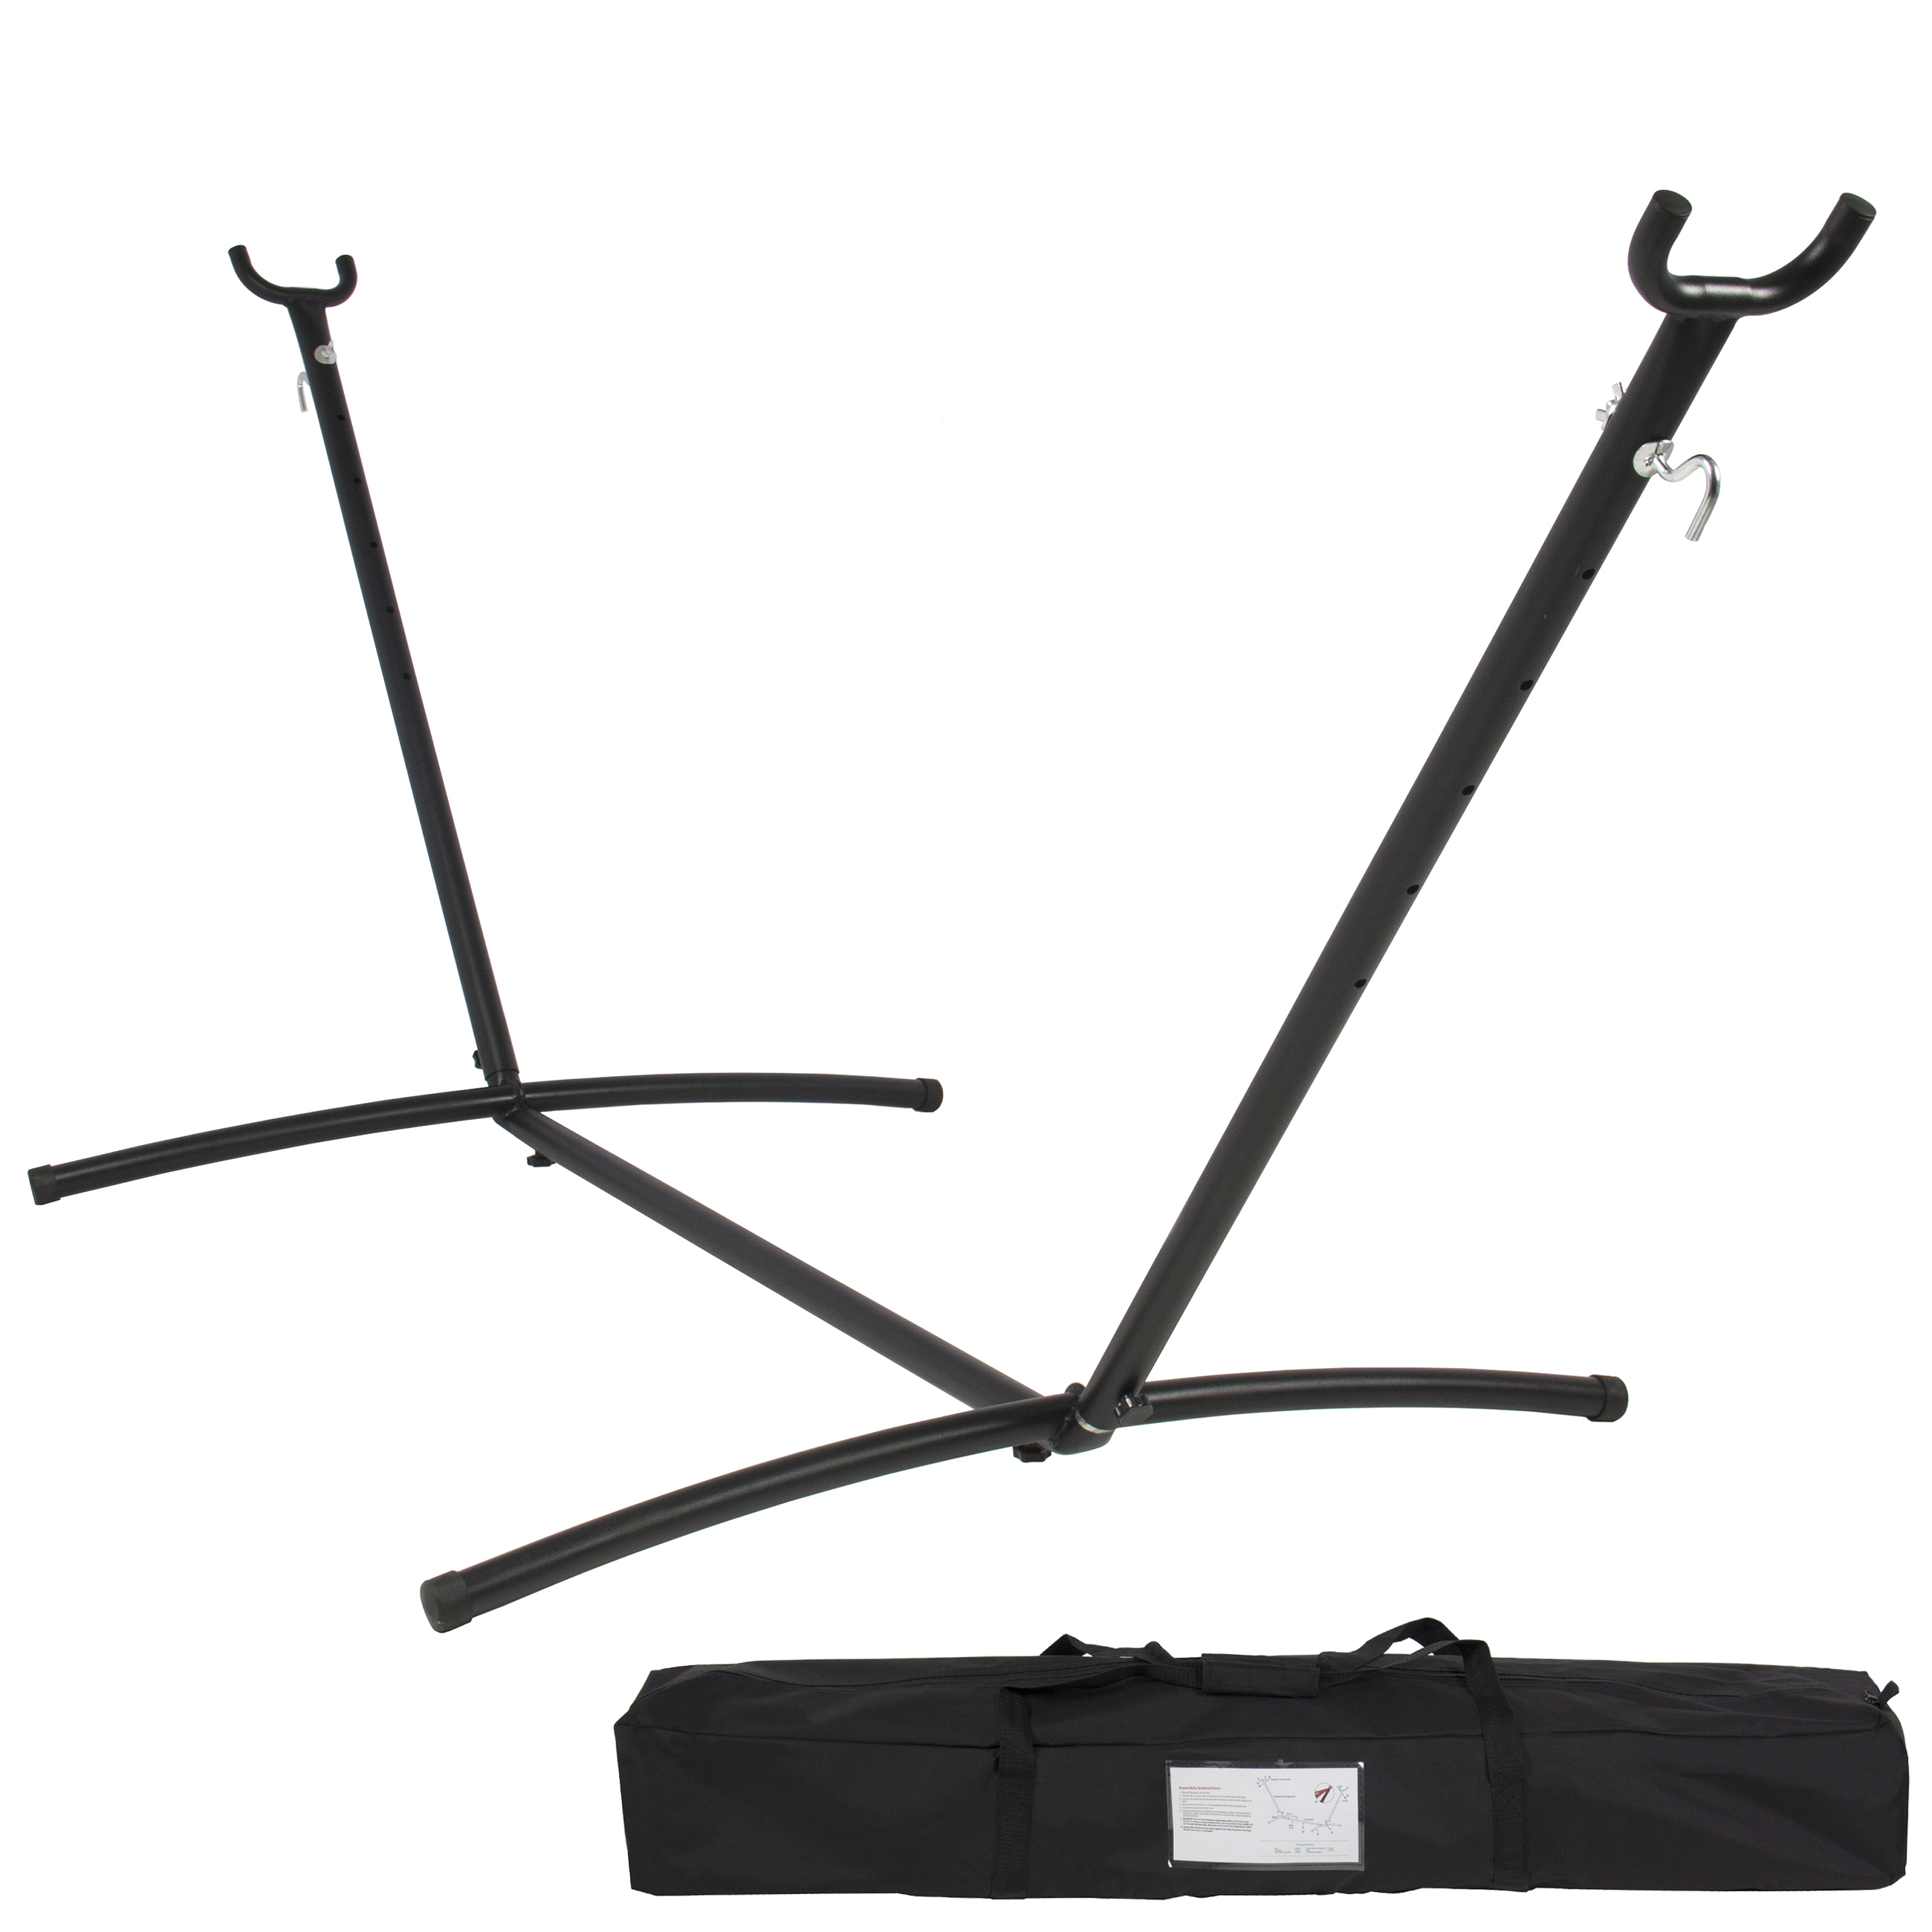 Best Choice Products 9ft Portable Steel Hammock Stand W/ Carrying Case    Black   Walmart.com